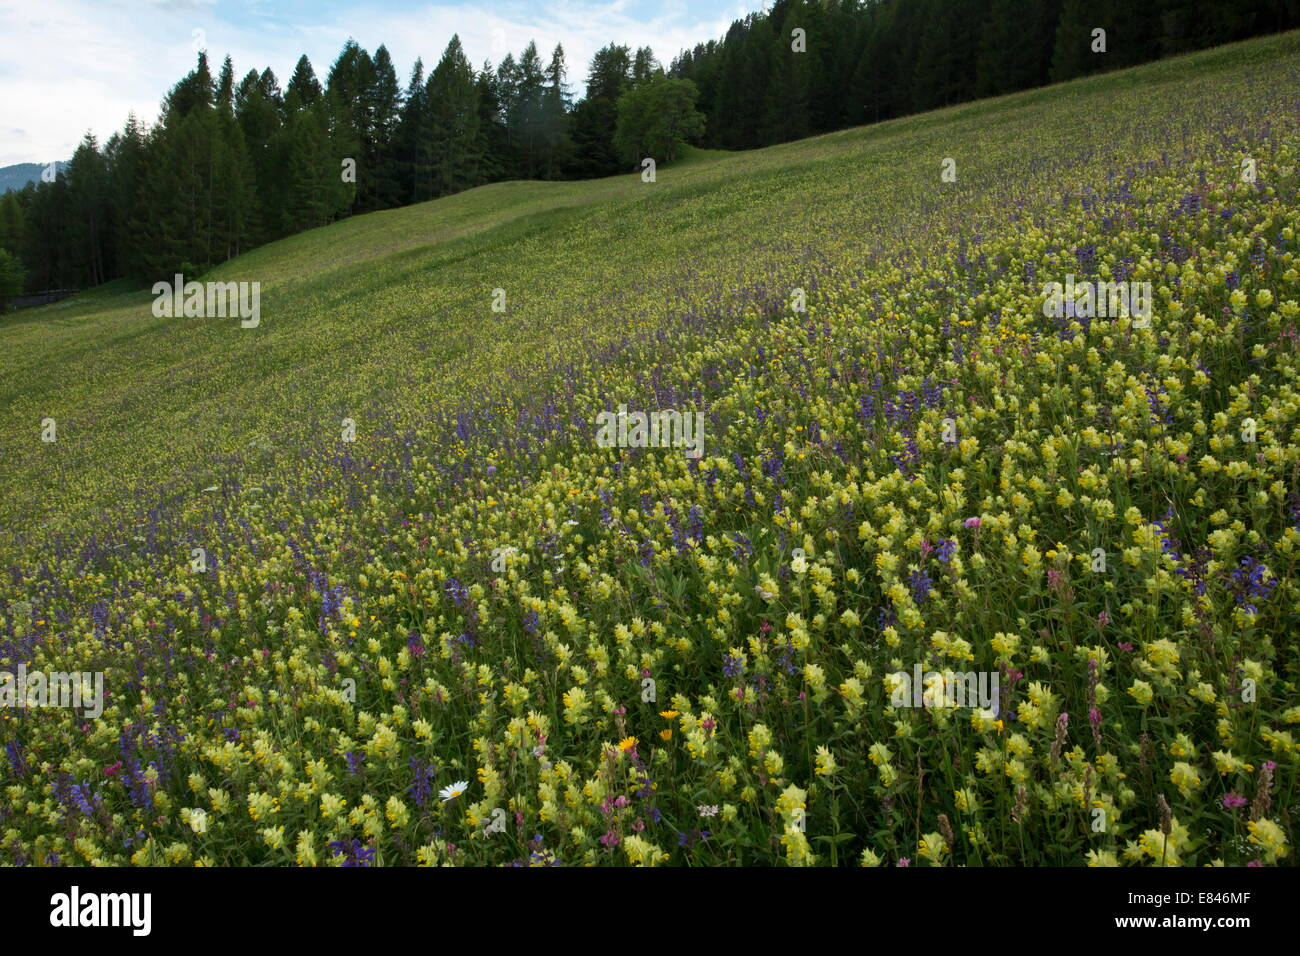 Beautiful flowery hay meadow, with Sainfoin, clary etc above Cortina d'Ampezzo, Dolomites, Italy - Stock Image